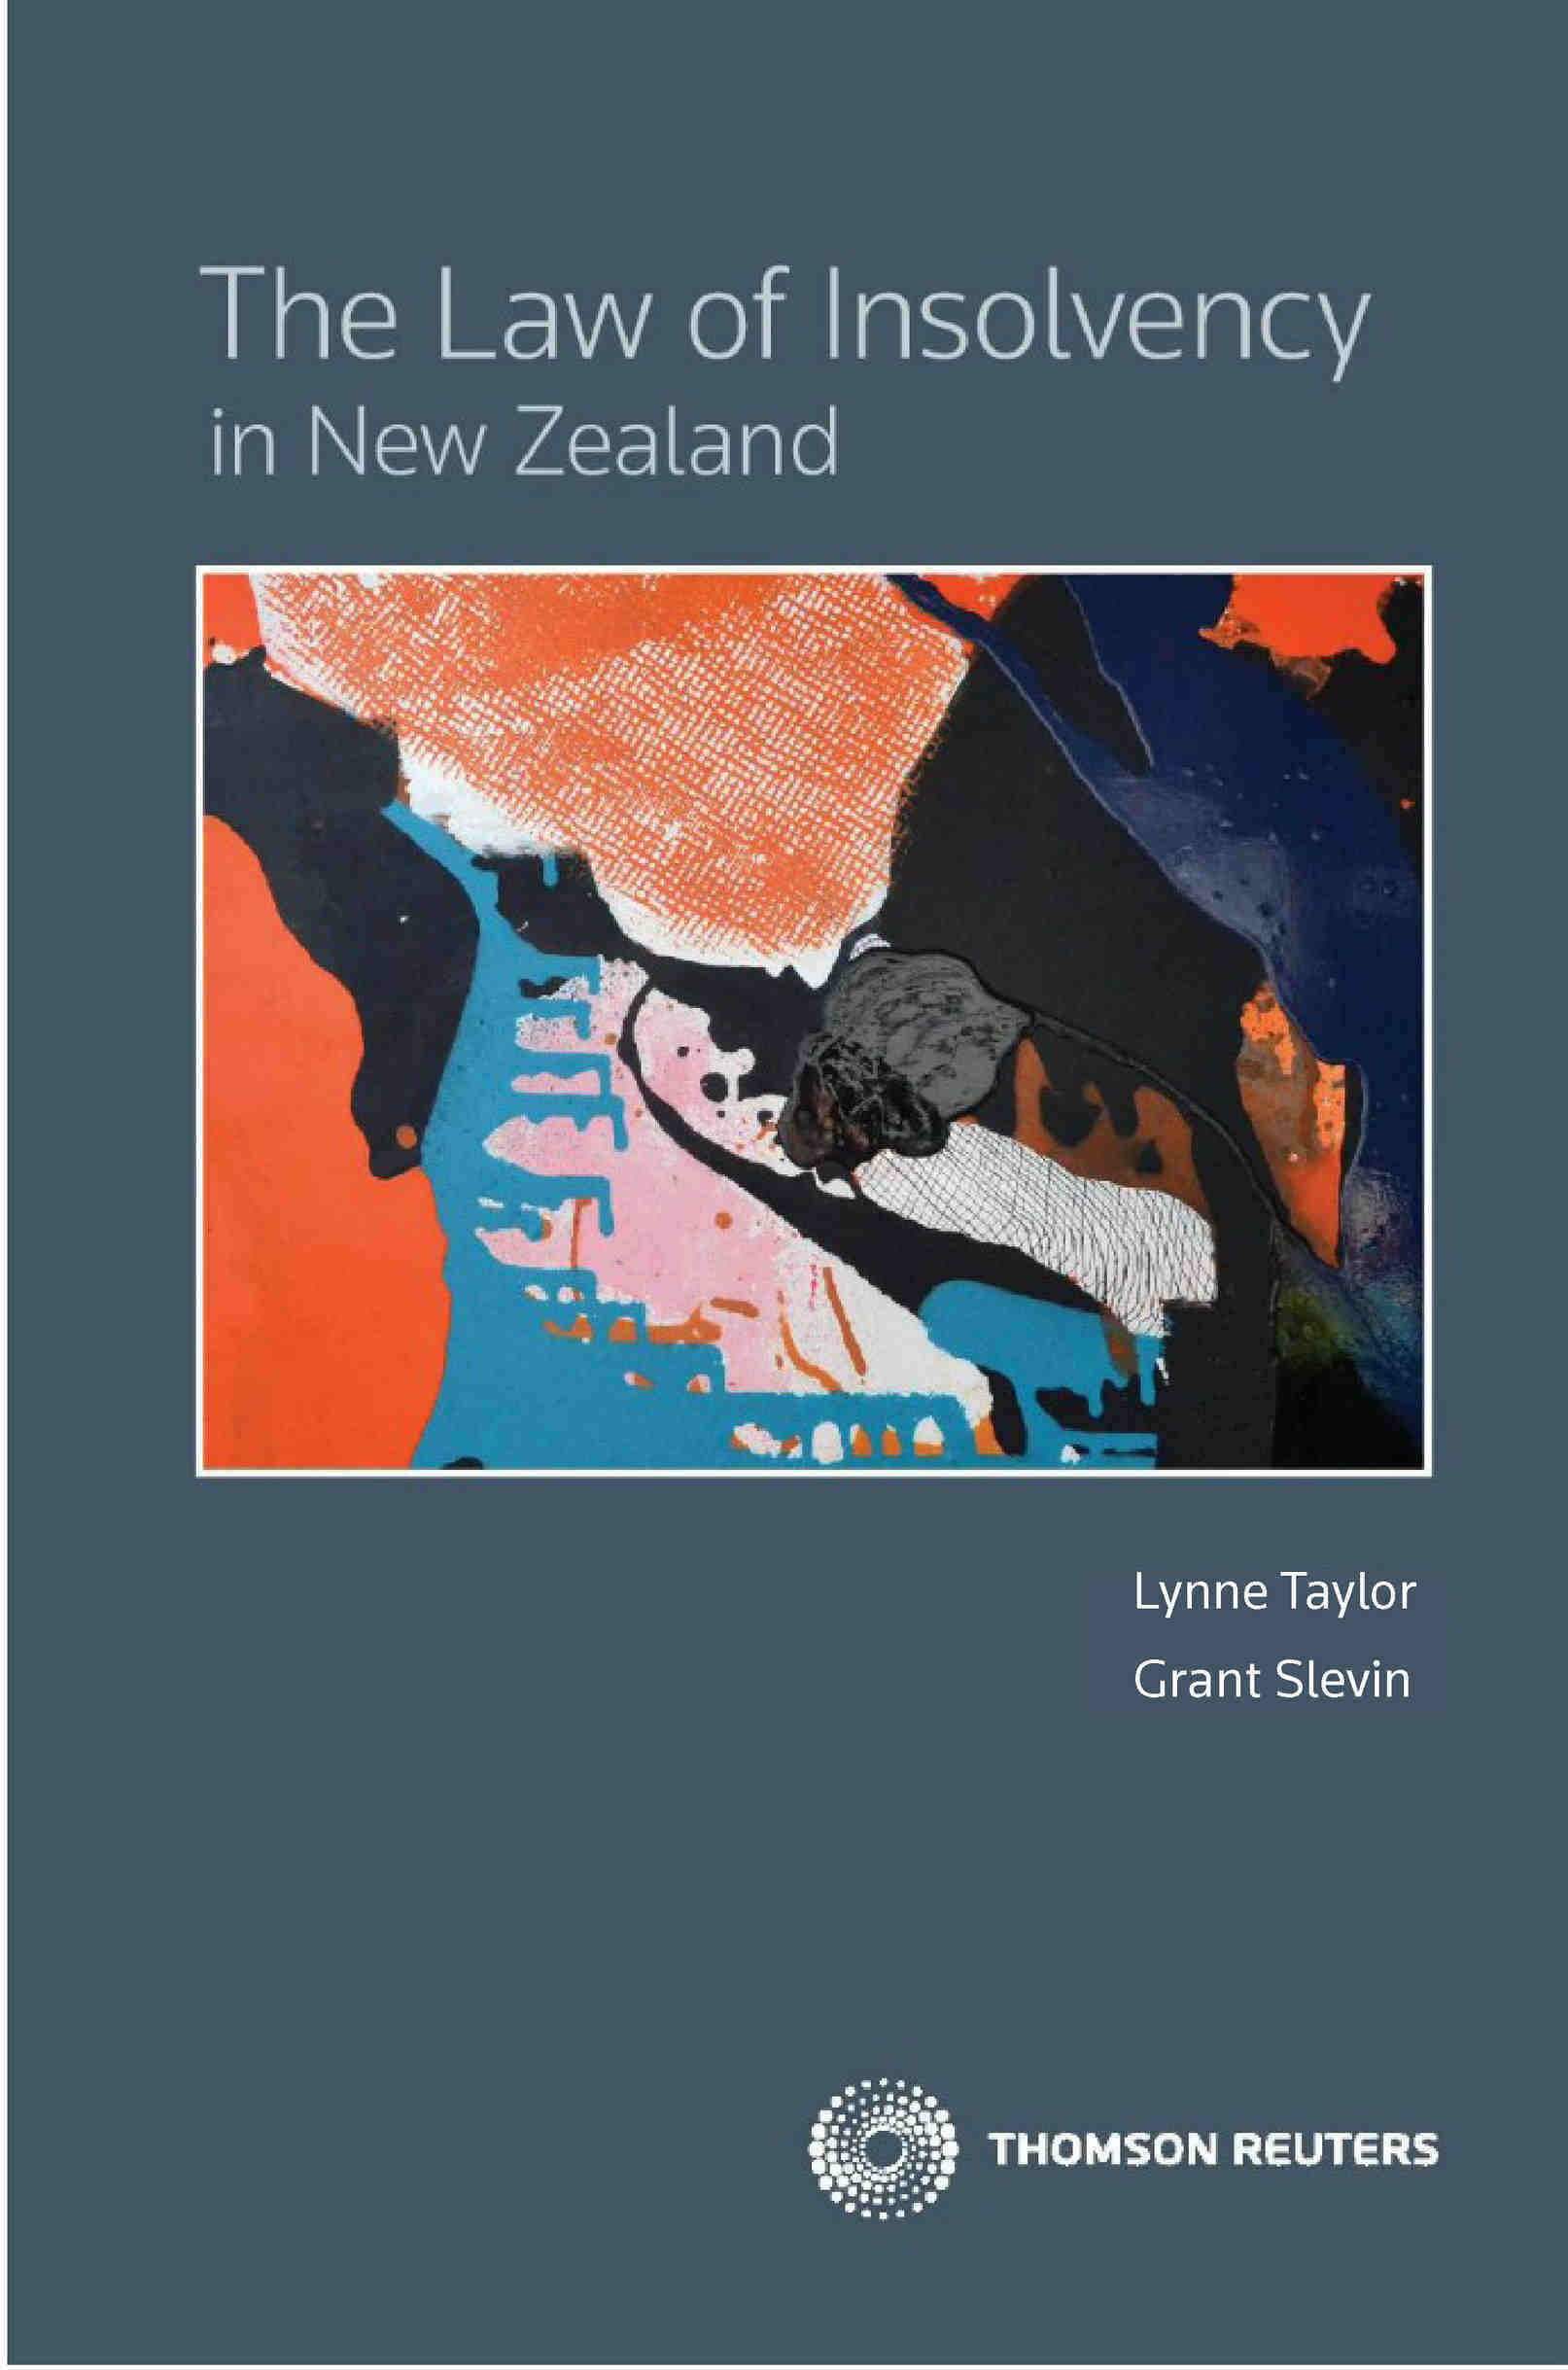 The Law of Insolvency in New Zealand (Book + eBook Bundle)